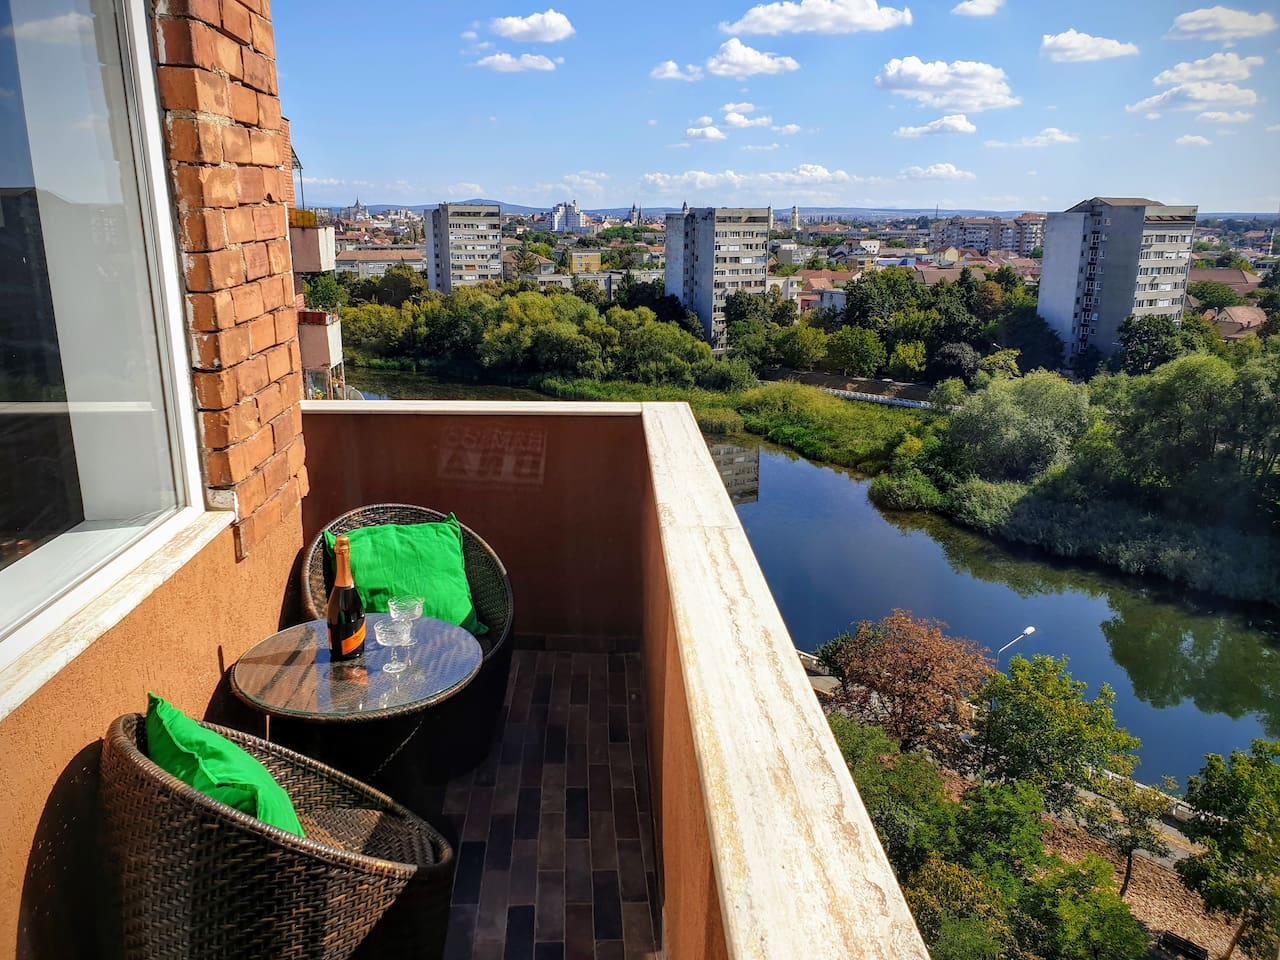 The balcony with city/river view. Nice place for relaxing